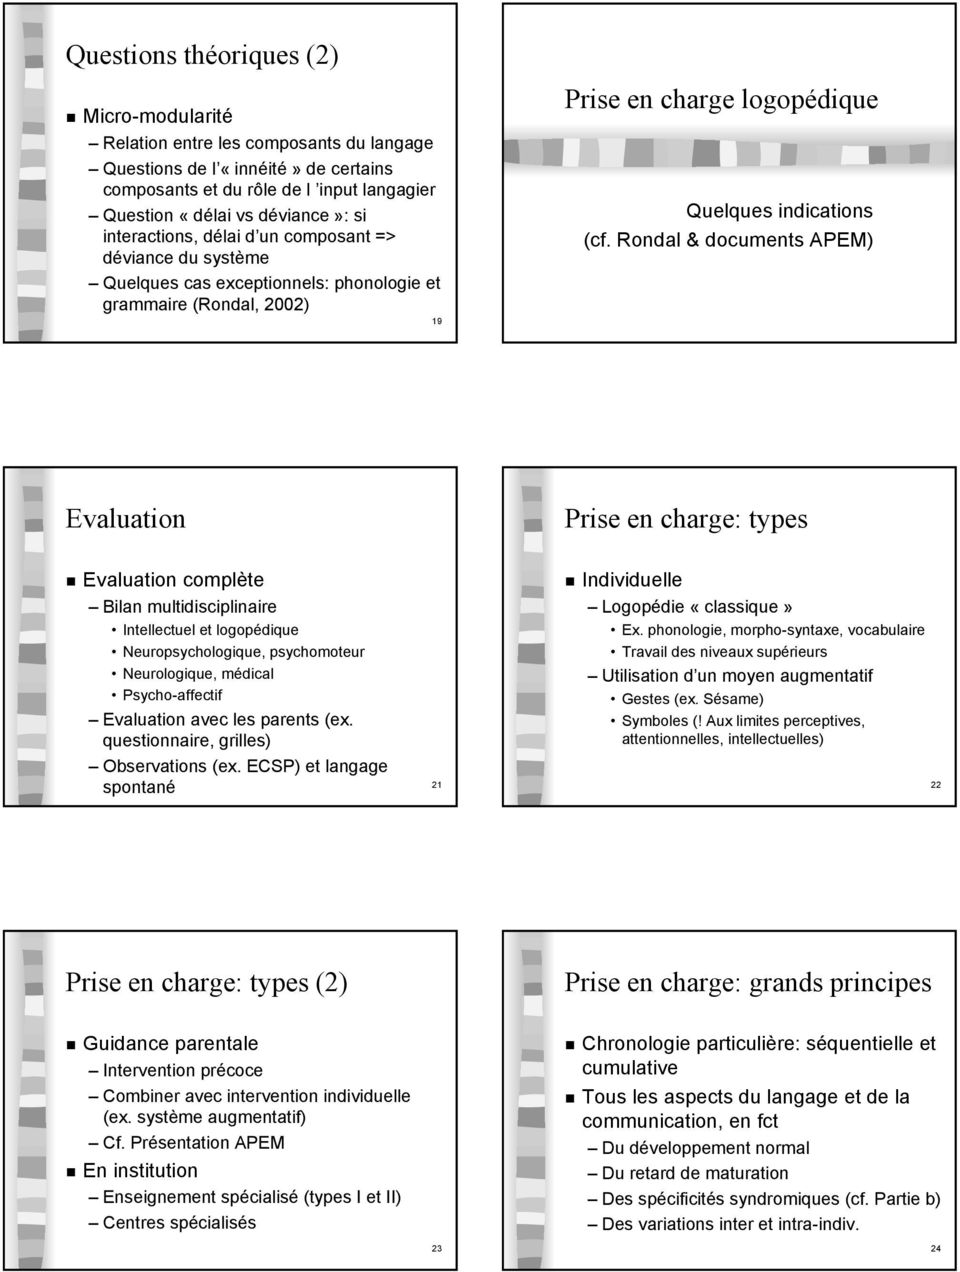 Rondal & documents APEM) Evaluation Prise en charge: types Evaluation complète Bilan multidisciplinaire Intellectuel et logopédique Neuropsychologique, psychomoteur Neurologique, médical